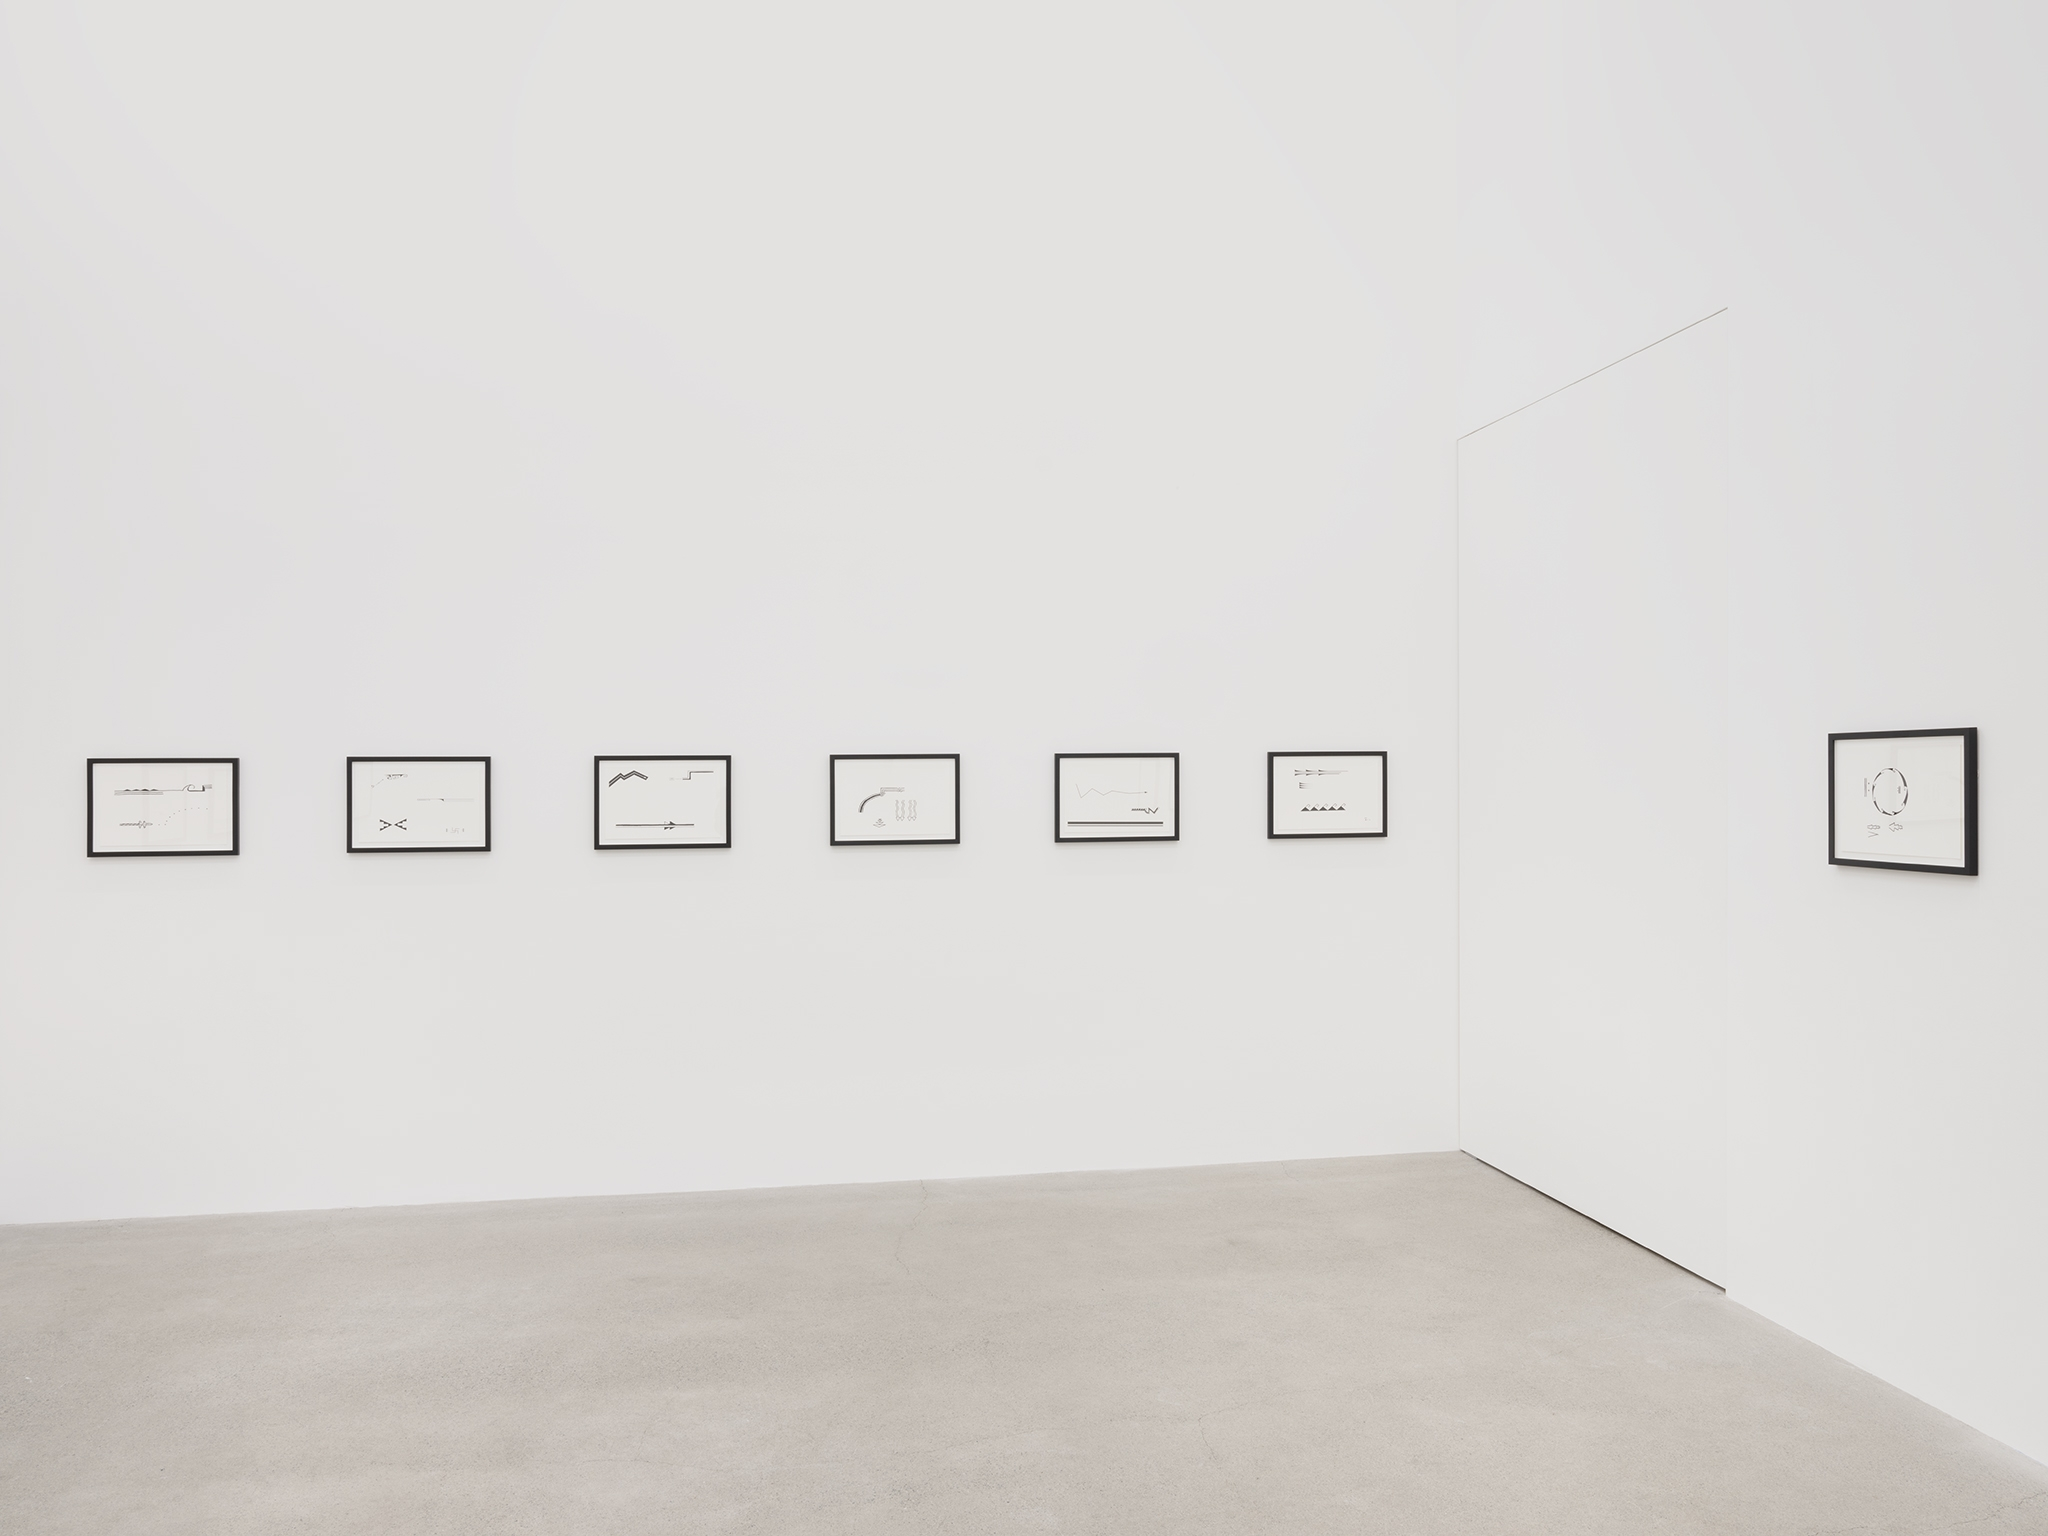 Raven Chacon, …lahgo adil'i dine doo yeehosinilgii yidaaghi, 2004, 16 inkjet prints, each 14 x 20 in. (36 x 51 cm). Installation view, Unexplained Parade, Catriona Jeffries, Vancouver, March 9, 2019 by